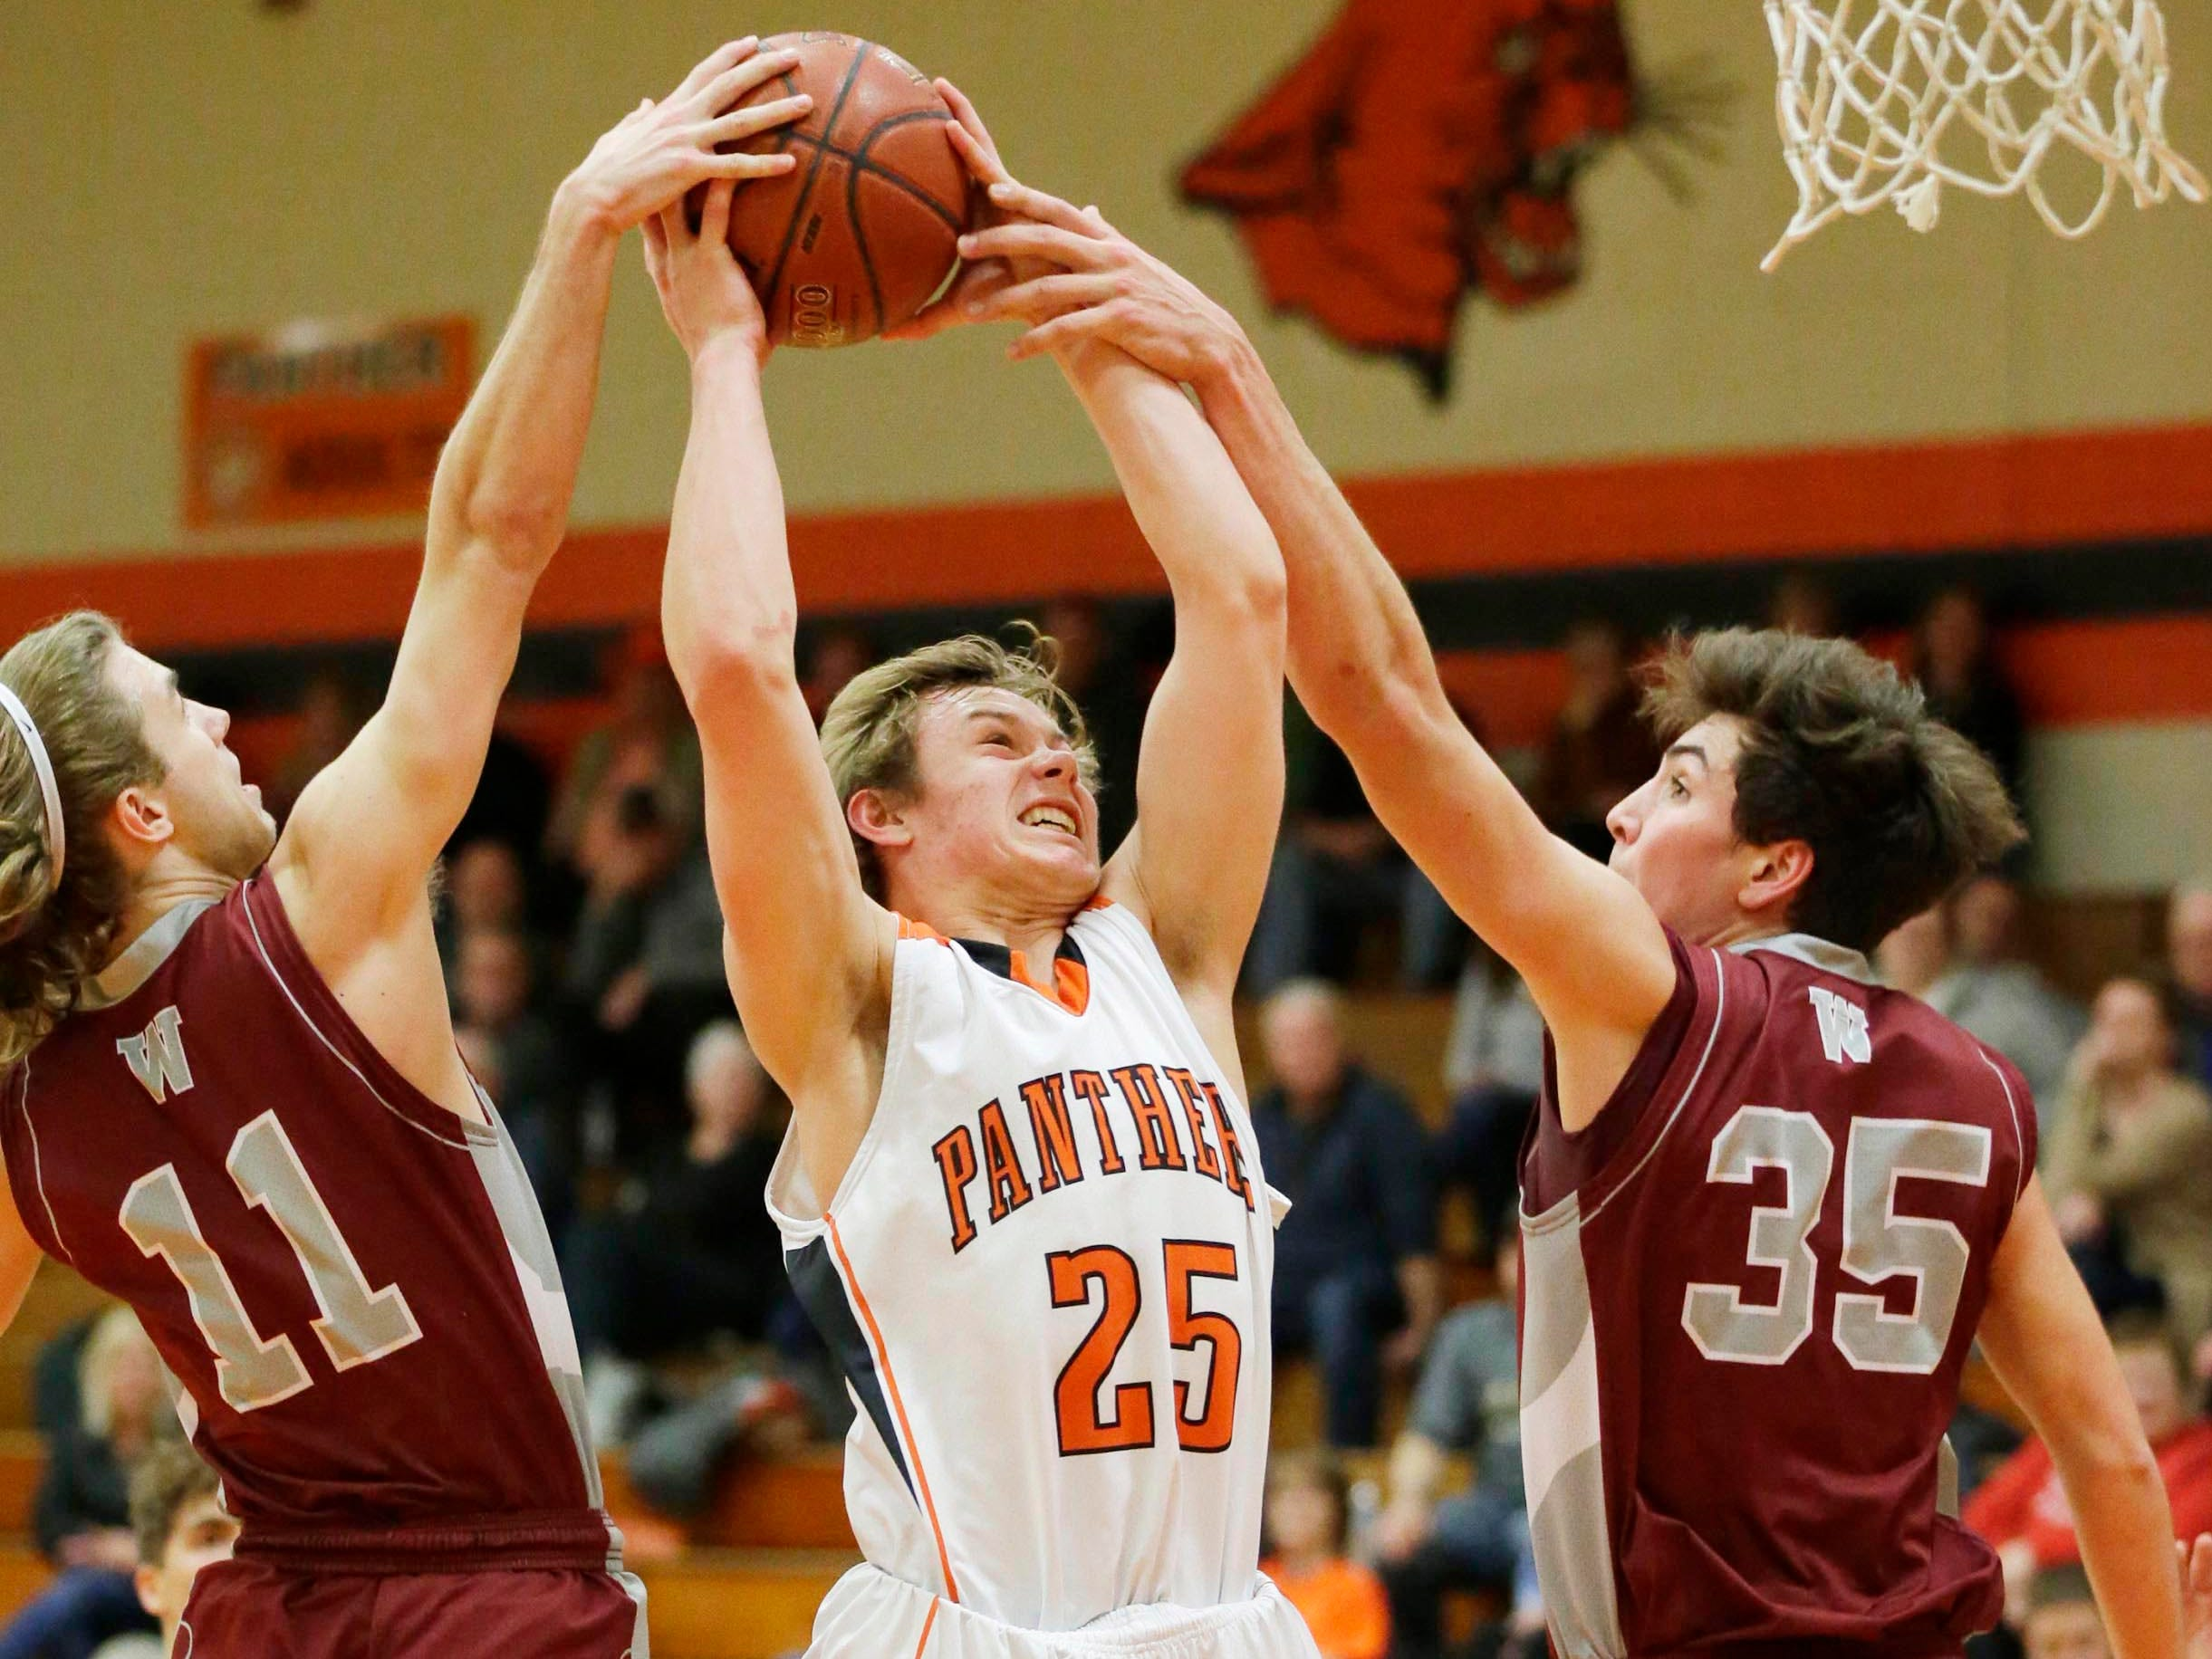 Winneconne's Marshal Scheider (11) and Greg Murawski (35) tag team to block Plymouth's Aiden Reilly (25) from making a shot, Wednesday, February 21, 2019, in Plymouth, Wis.